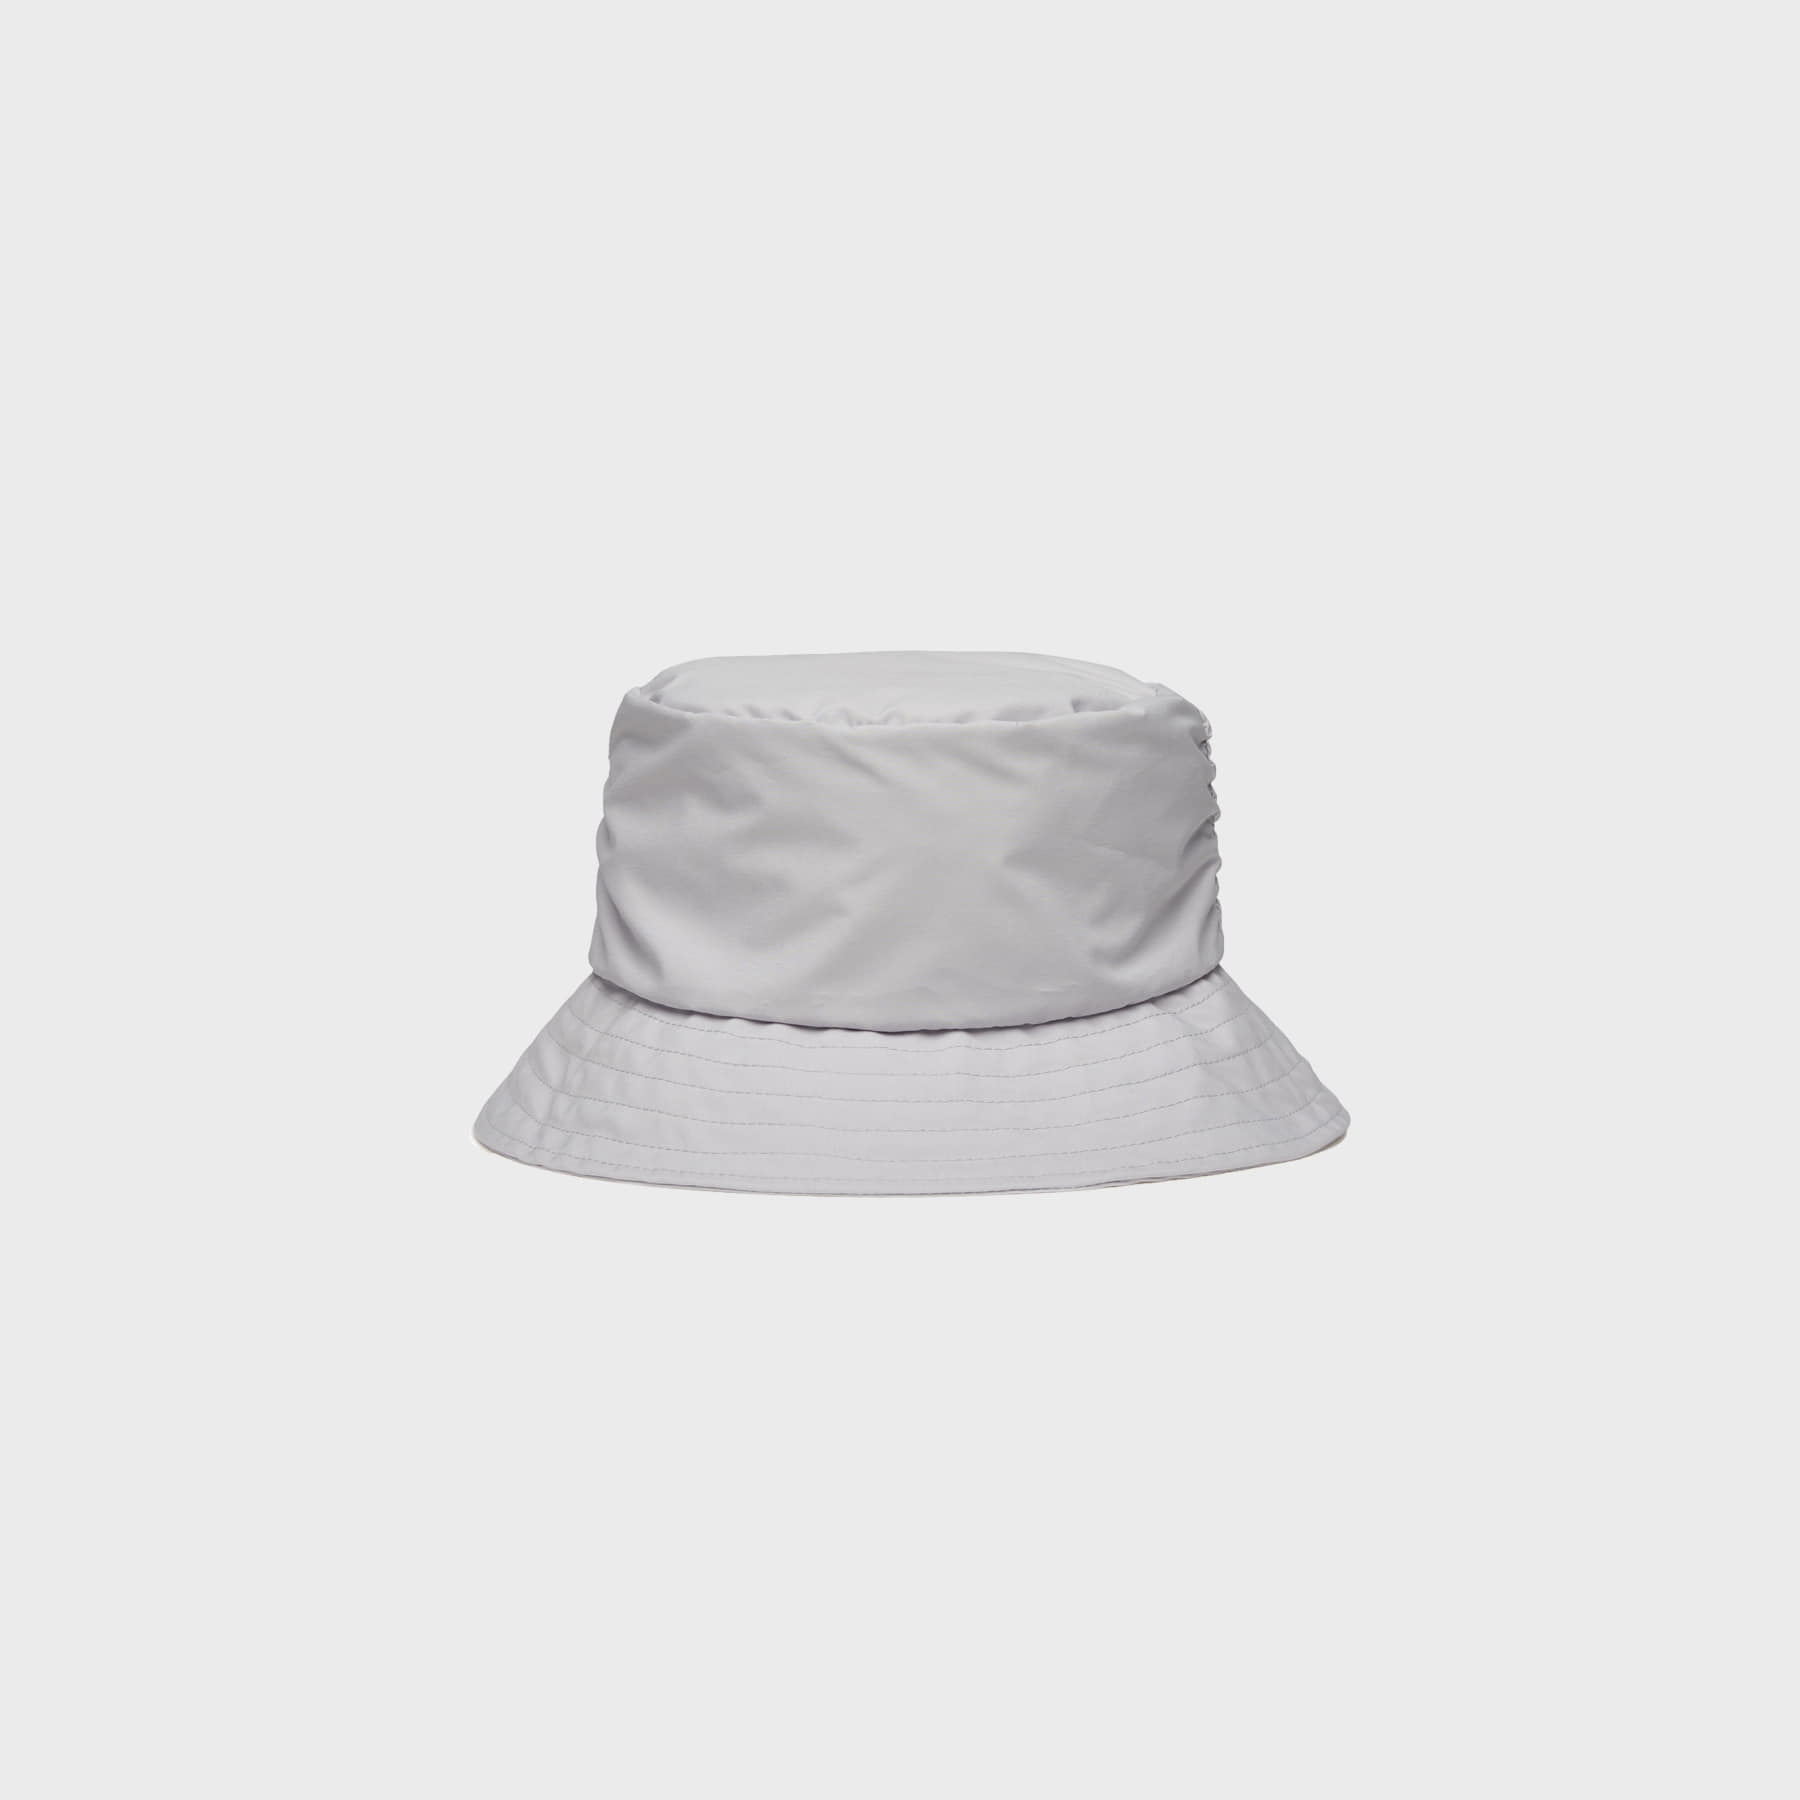 waterproof bucket (gray)